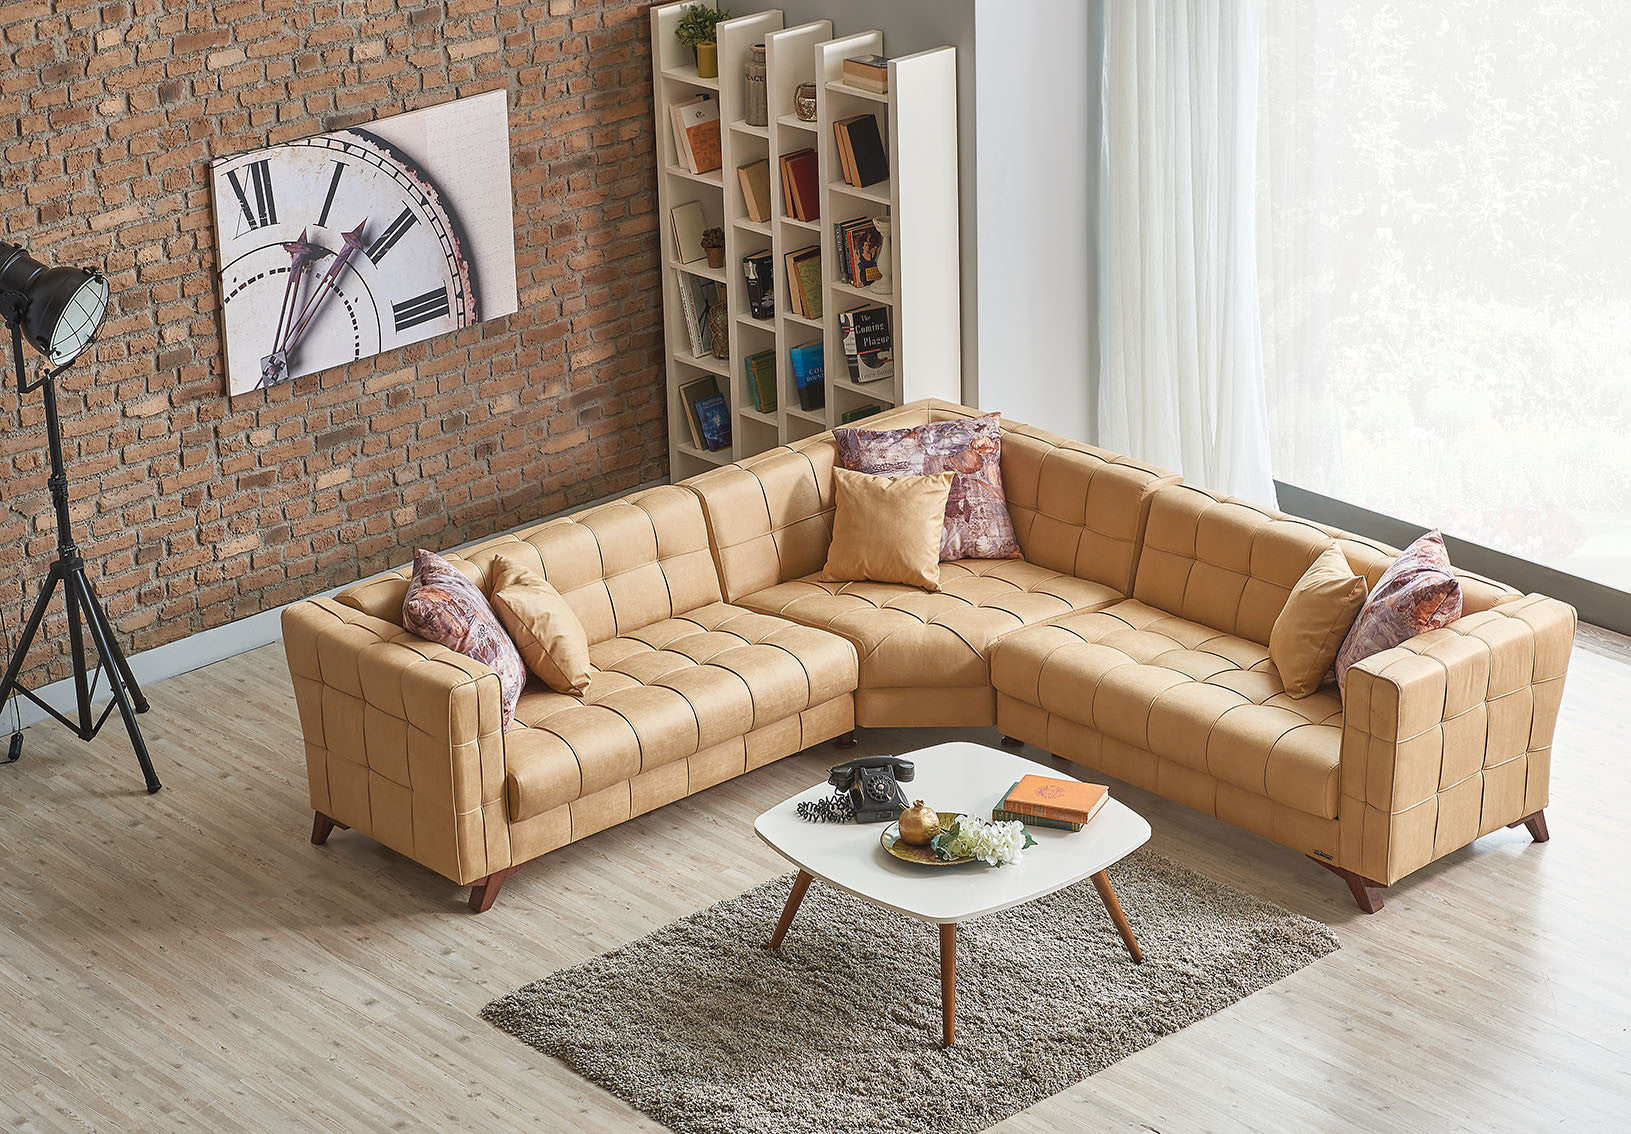 uptown sectional sectionals rooms almond living couch couches discount tan sofas american freight fabric sofa